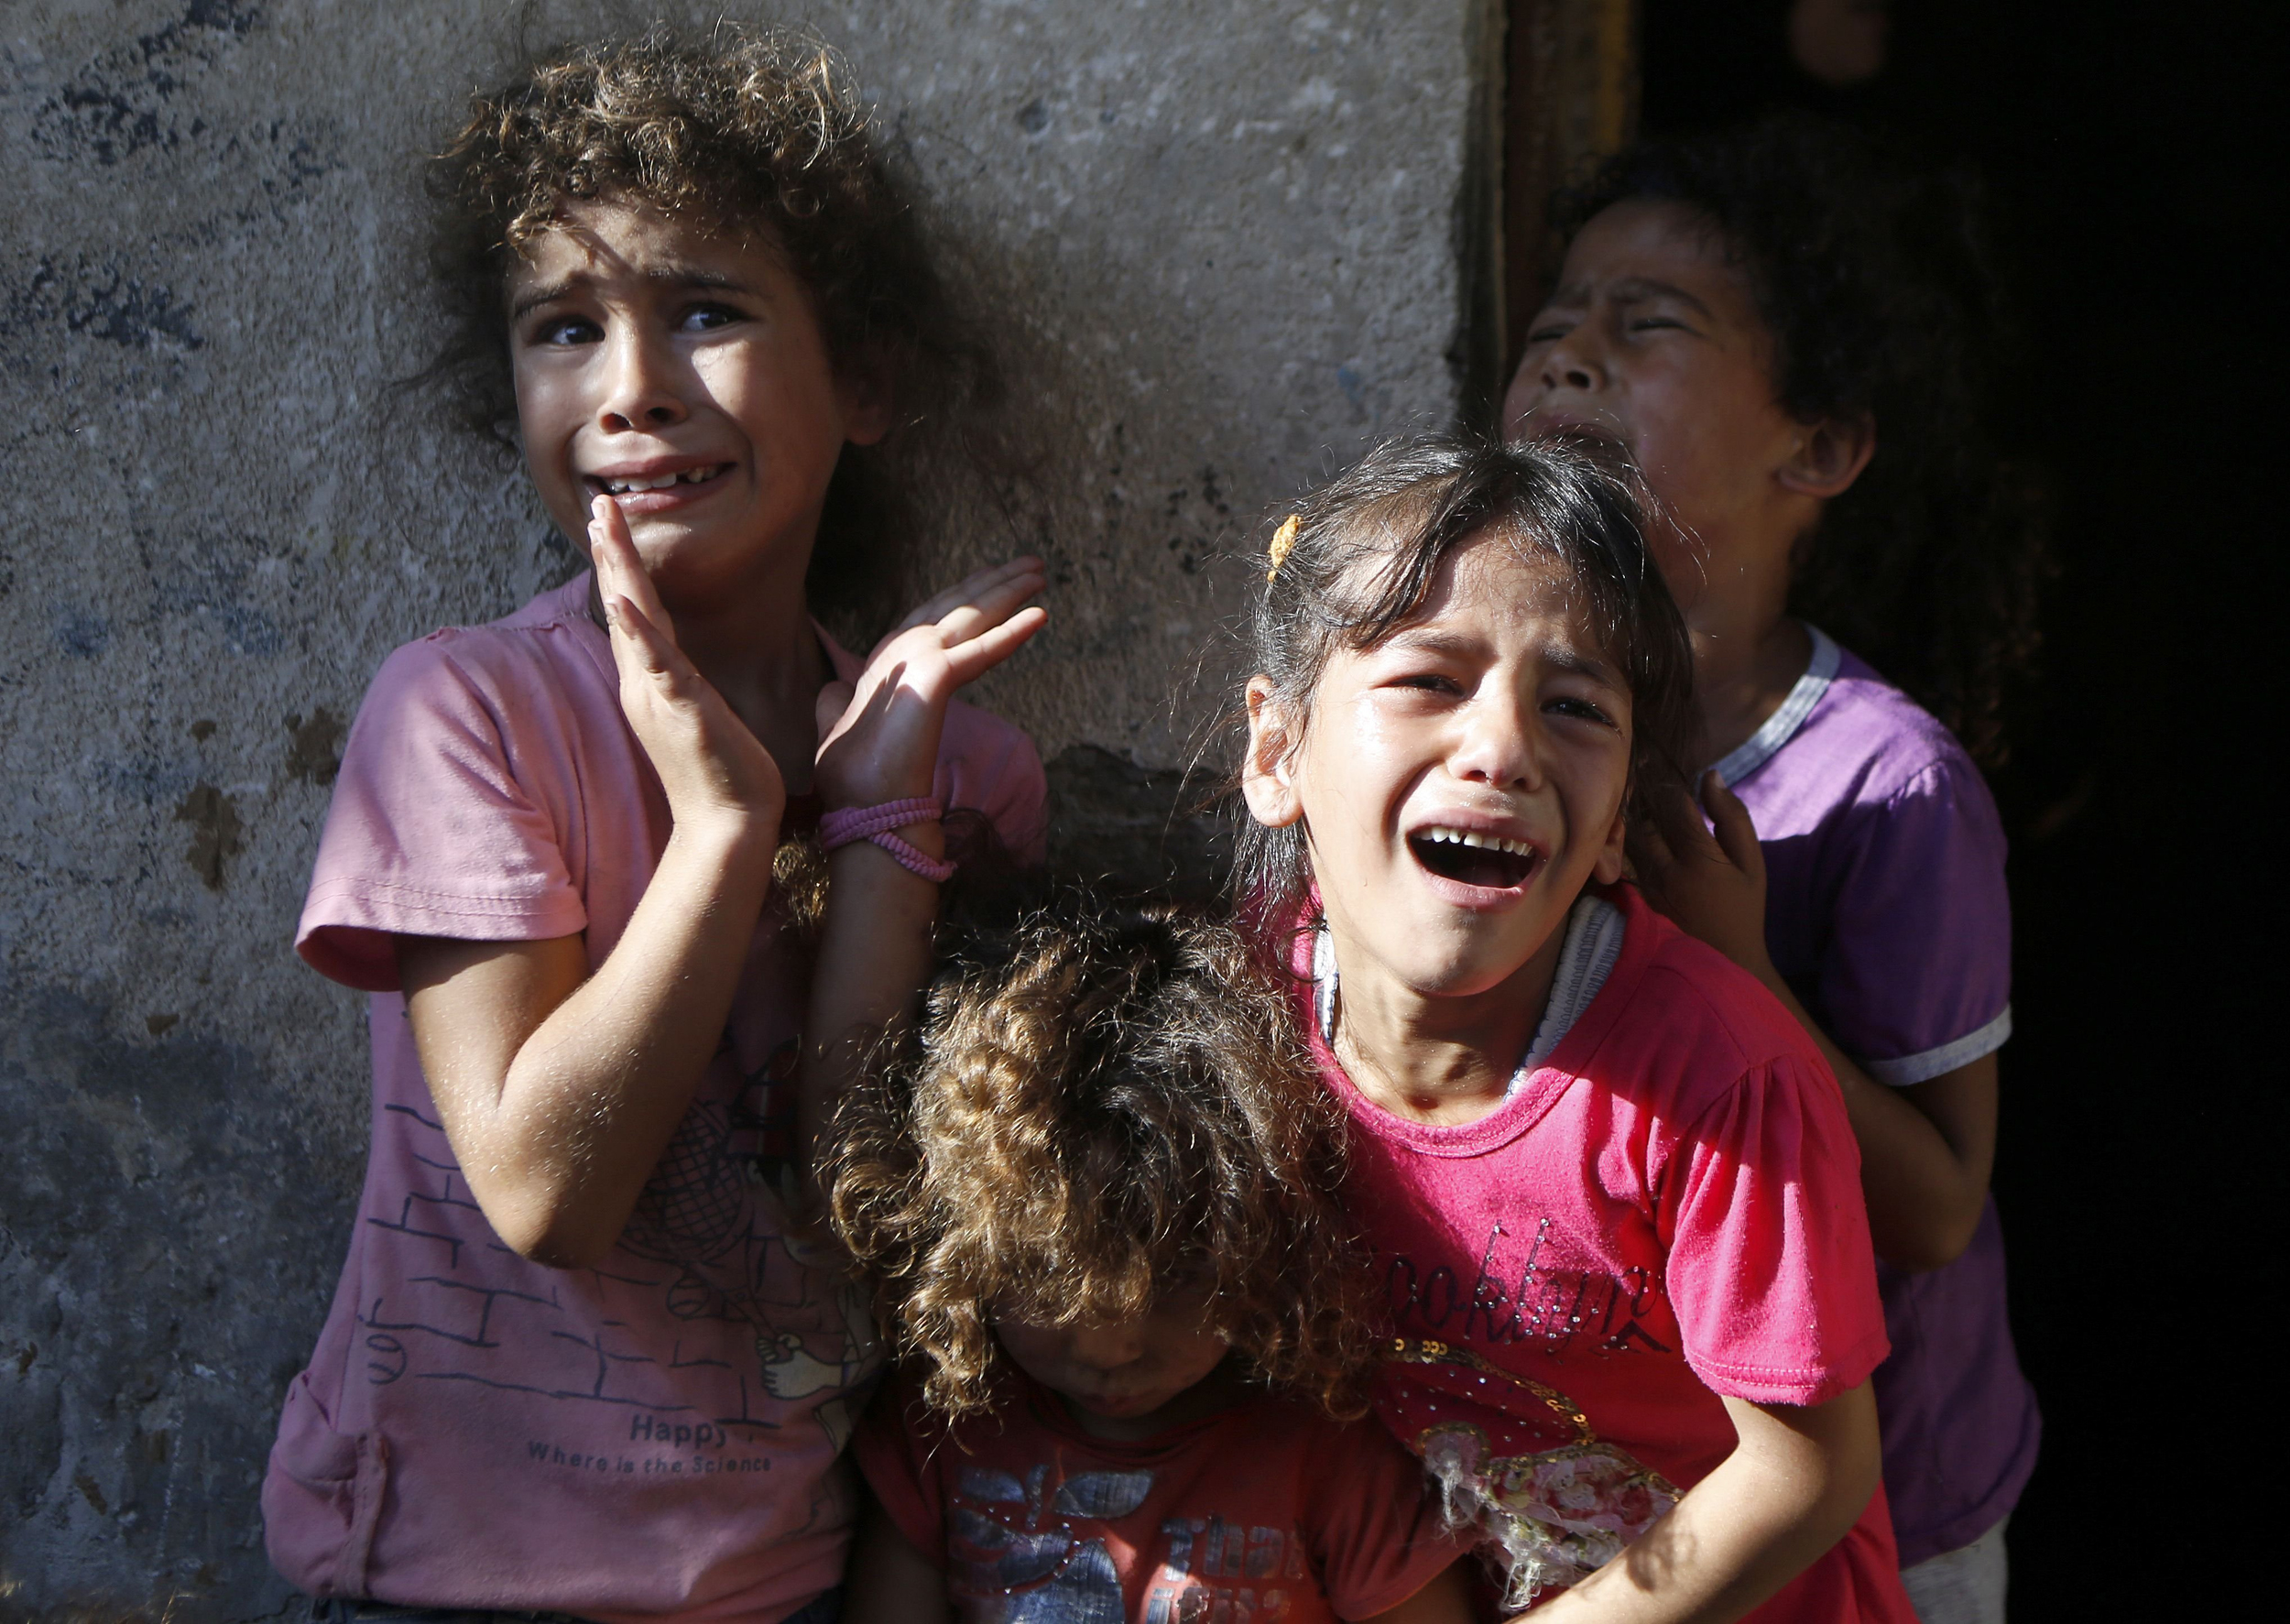 Young relatives of four boys, all from the Bakr family, killed during Israeli shelling, cry during their funeral in Gaza City, on July 16, 2014. Four children were killed and several injured at a beach in Gaza City medics said, in Israeli shelling witnessed by AFP journalists. The strikes appeared to be the result of shelling by the Israeli navy against an area with small shacks used by fishermen. The deaths raised the overall toll in nine days of violence in Gaza to 213. AFP PHOTO / MOHAMMED ABEDMOHAMMED ABED/AFP/Getty Images